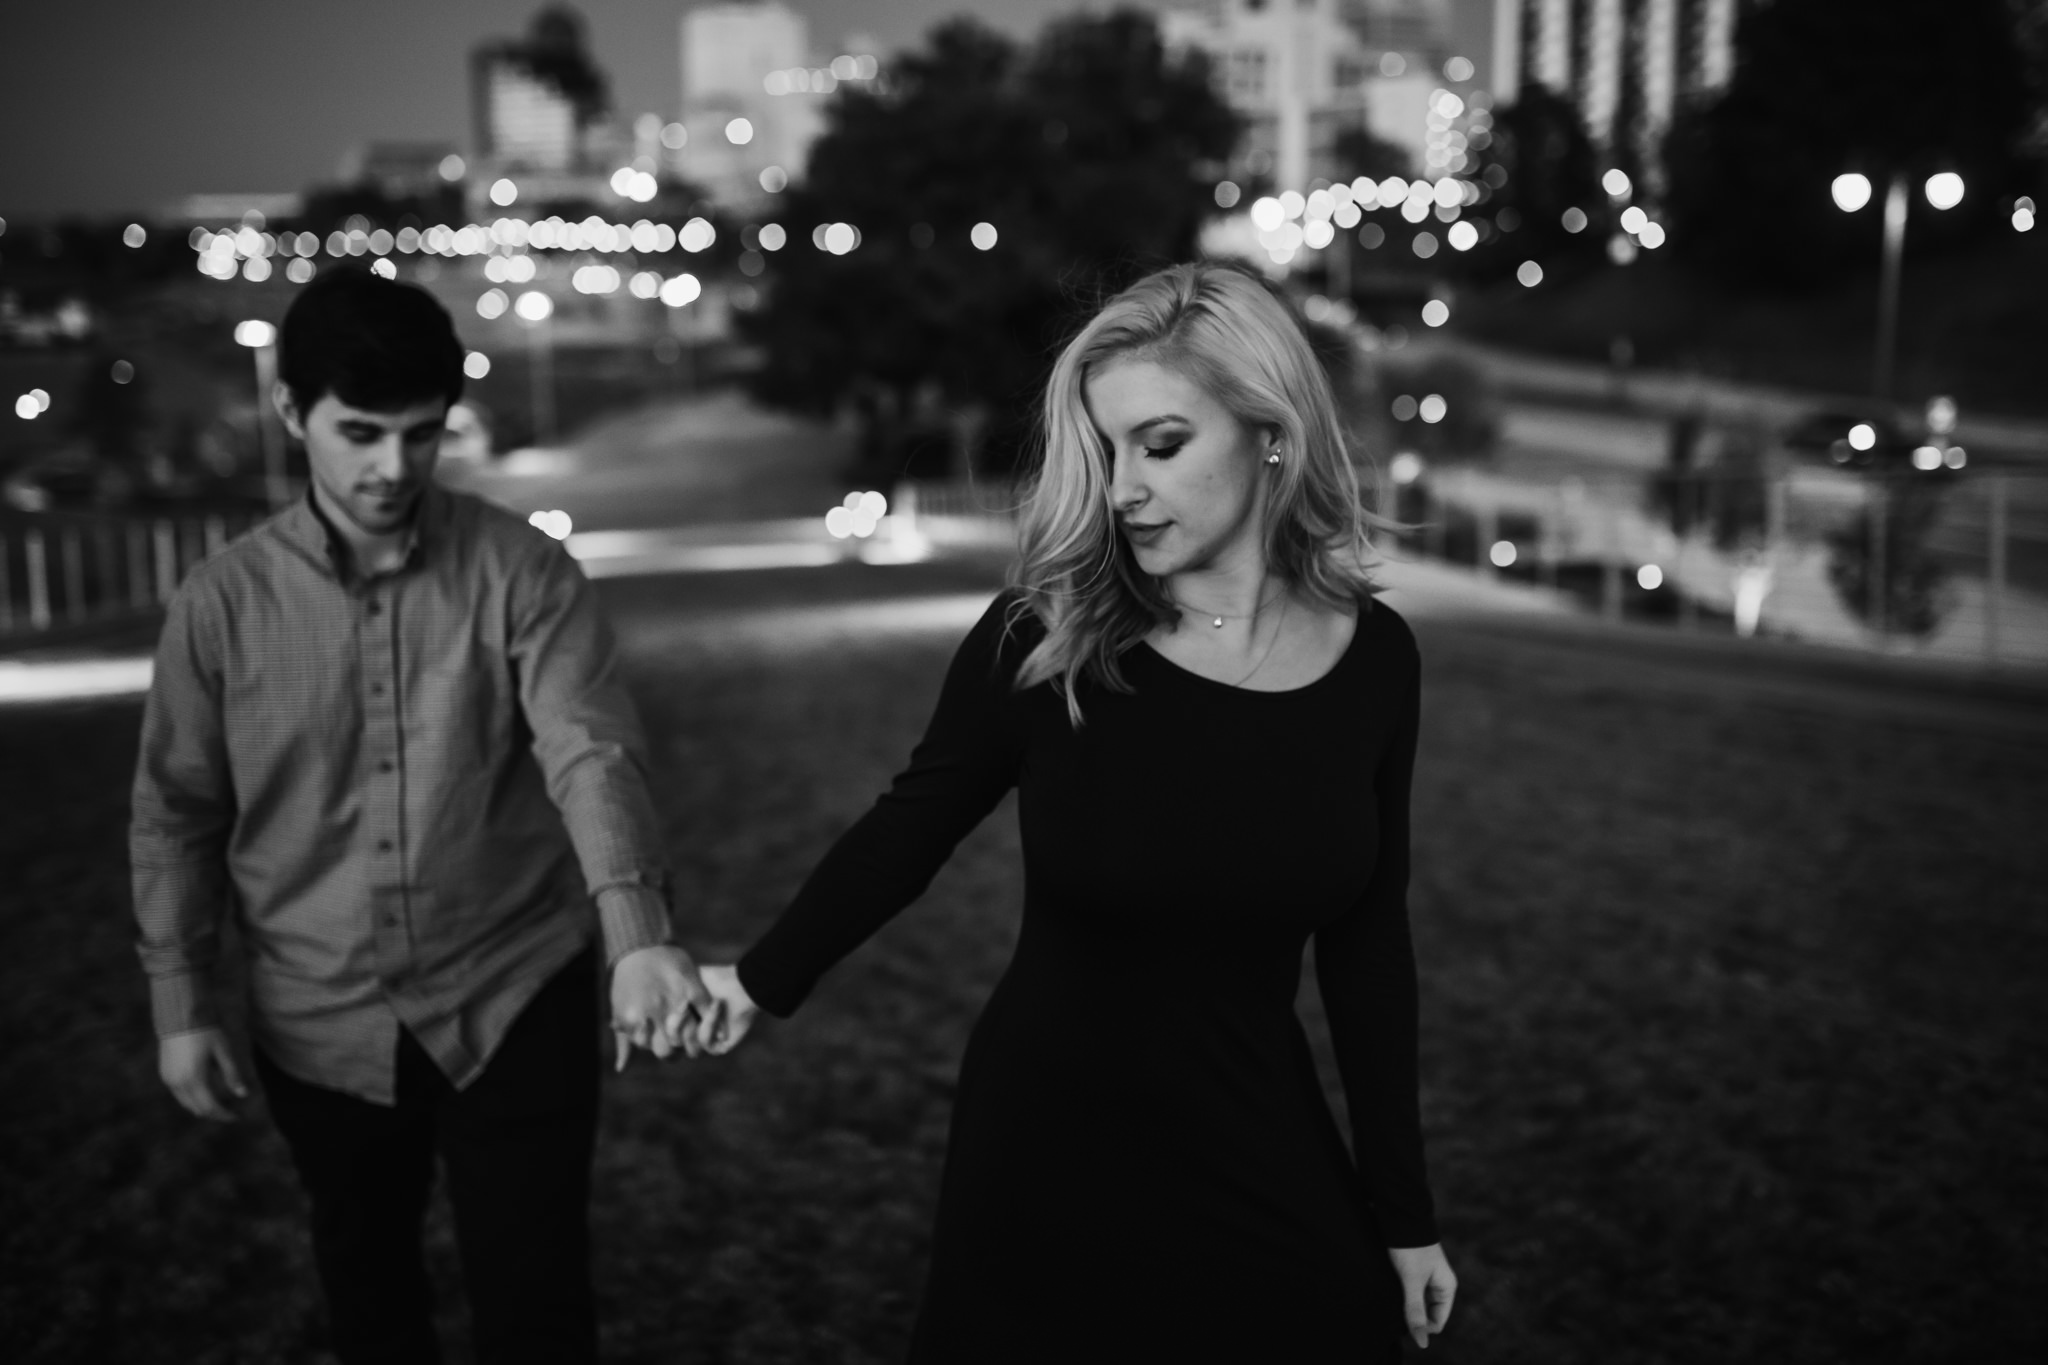 memphis-wedding-photographer-cassie-cook-photography-cafe-keough-engagement-photoshoot-coffee-engagement-60.jpg